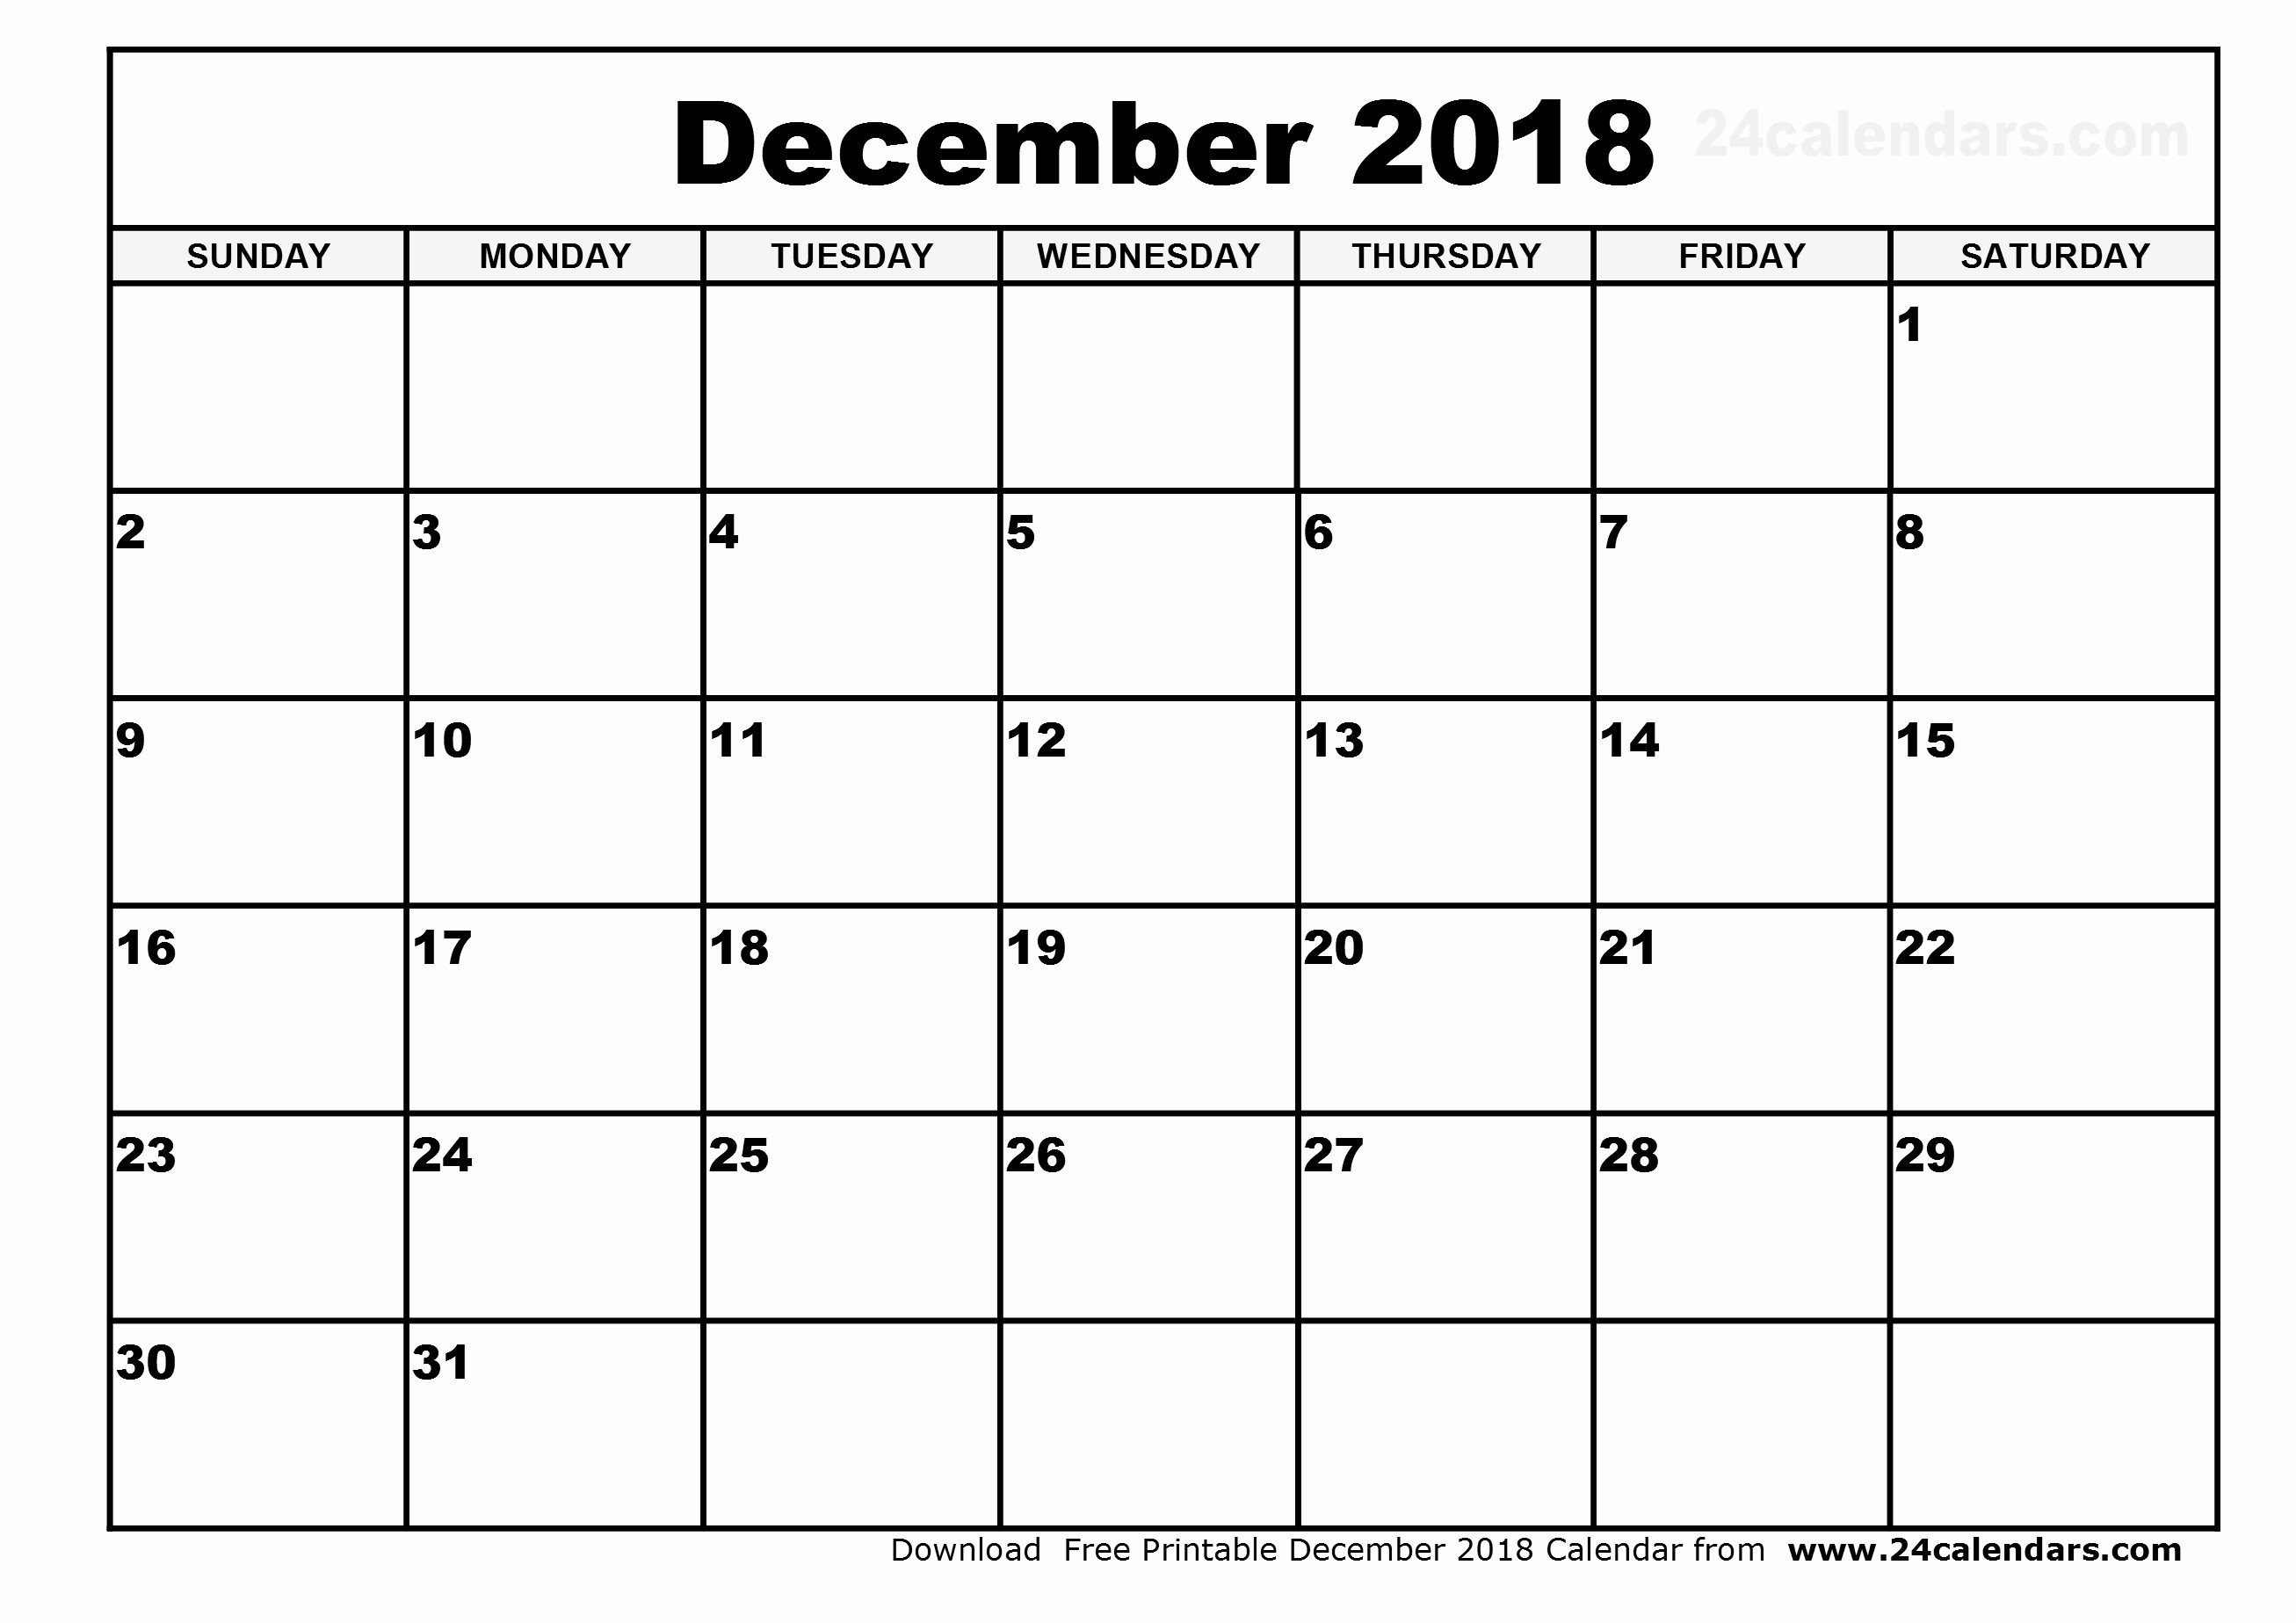 2018 Month by Month Calendar Beautiful 2018 Printable Calendar by Month September 2018